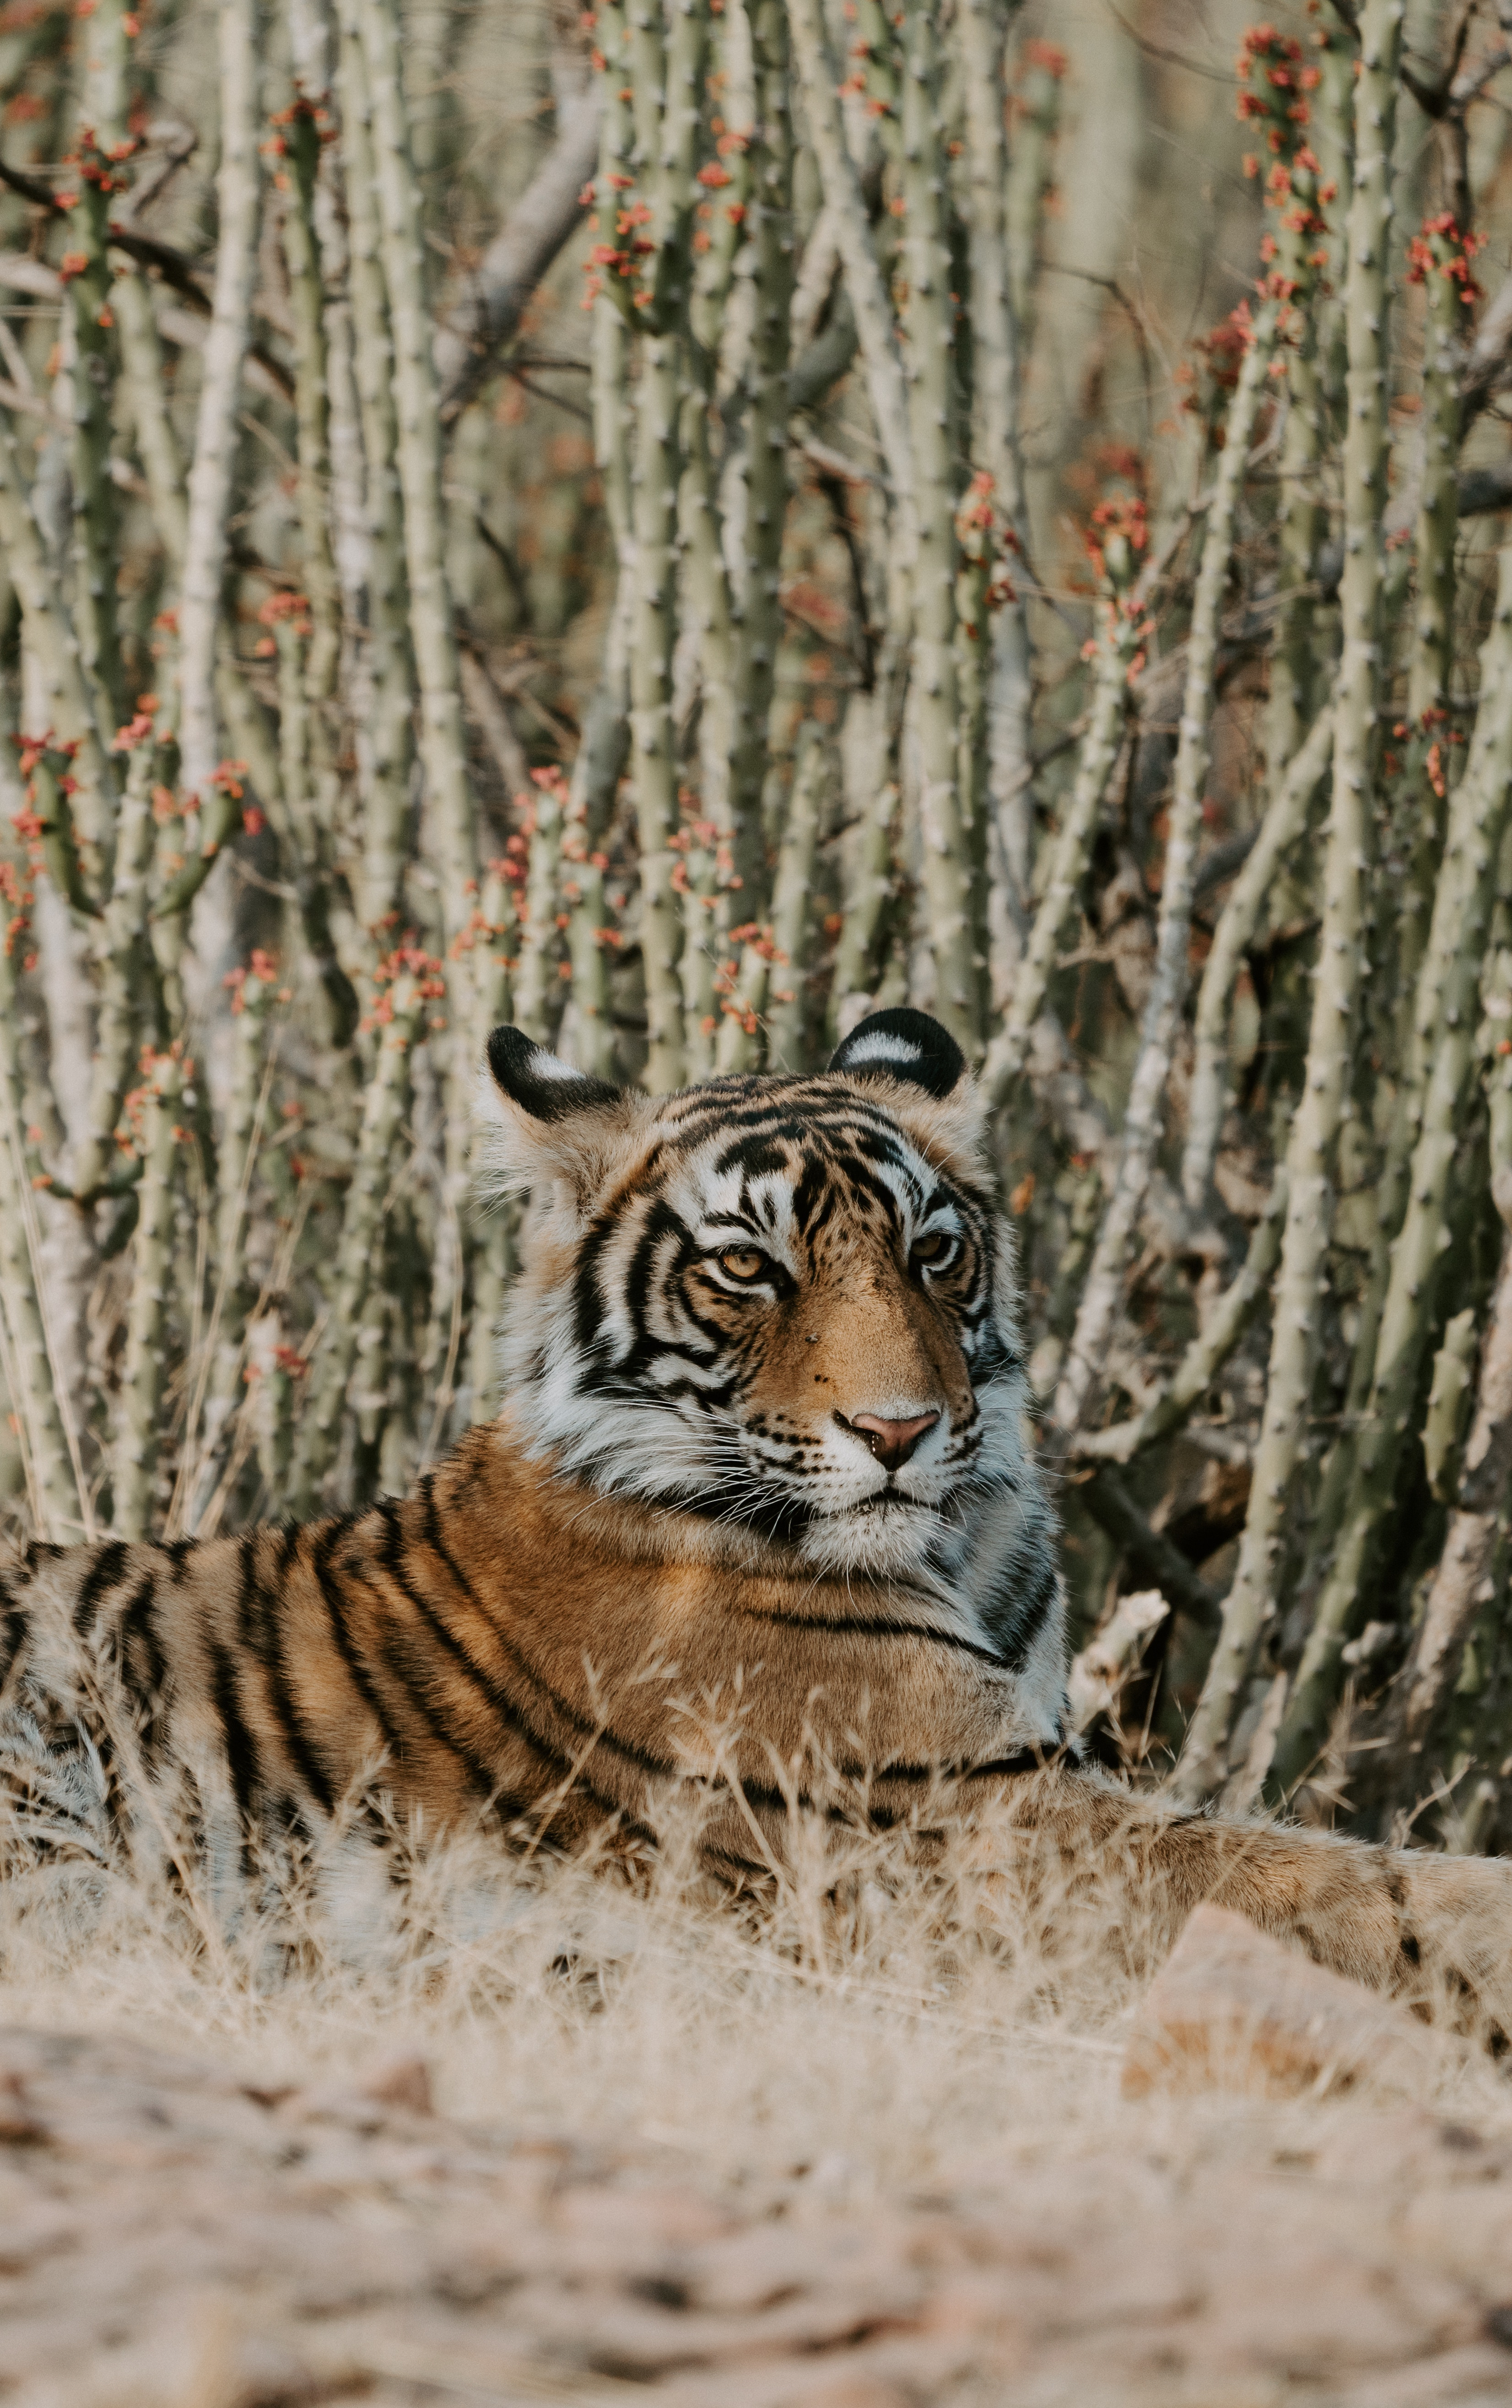 128581 download wallpaper Animals, Tiger, Lies, Predator, Big Cat screensavers and pictures for free